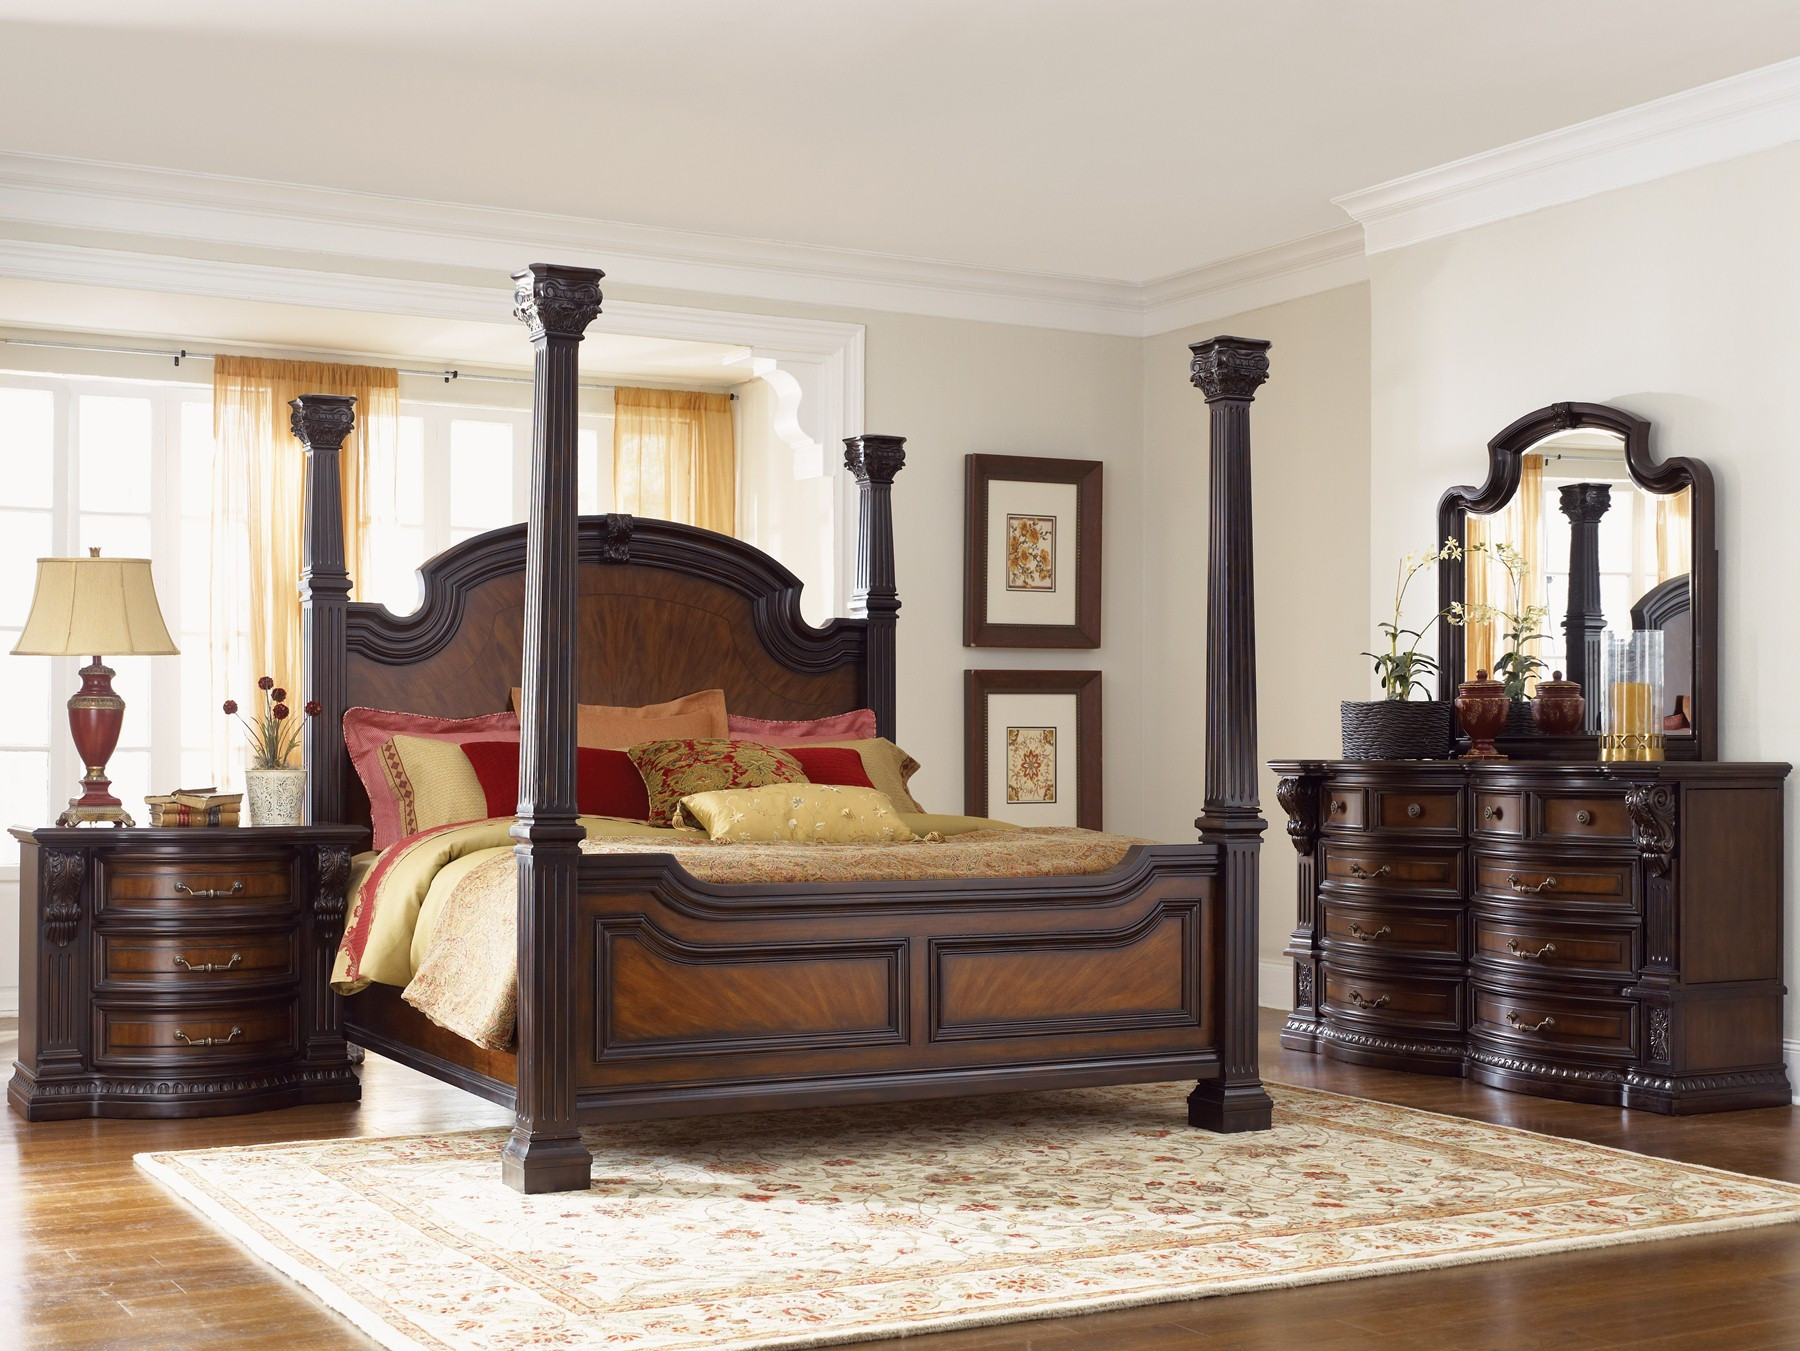 Best ideas about King Size Bedroom Set . Save or Pin King Size Bedroom Furniture Now.